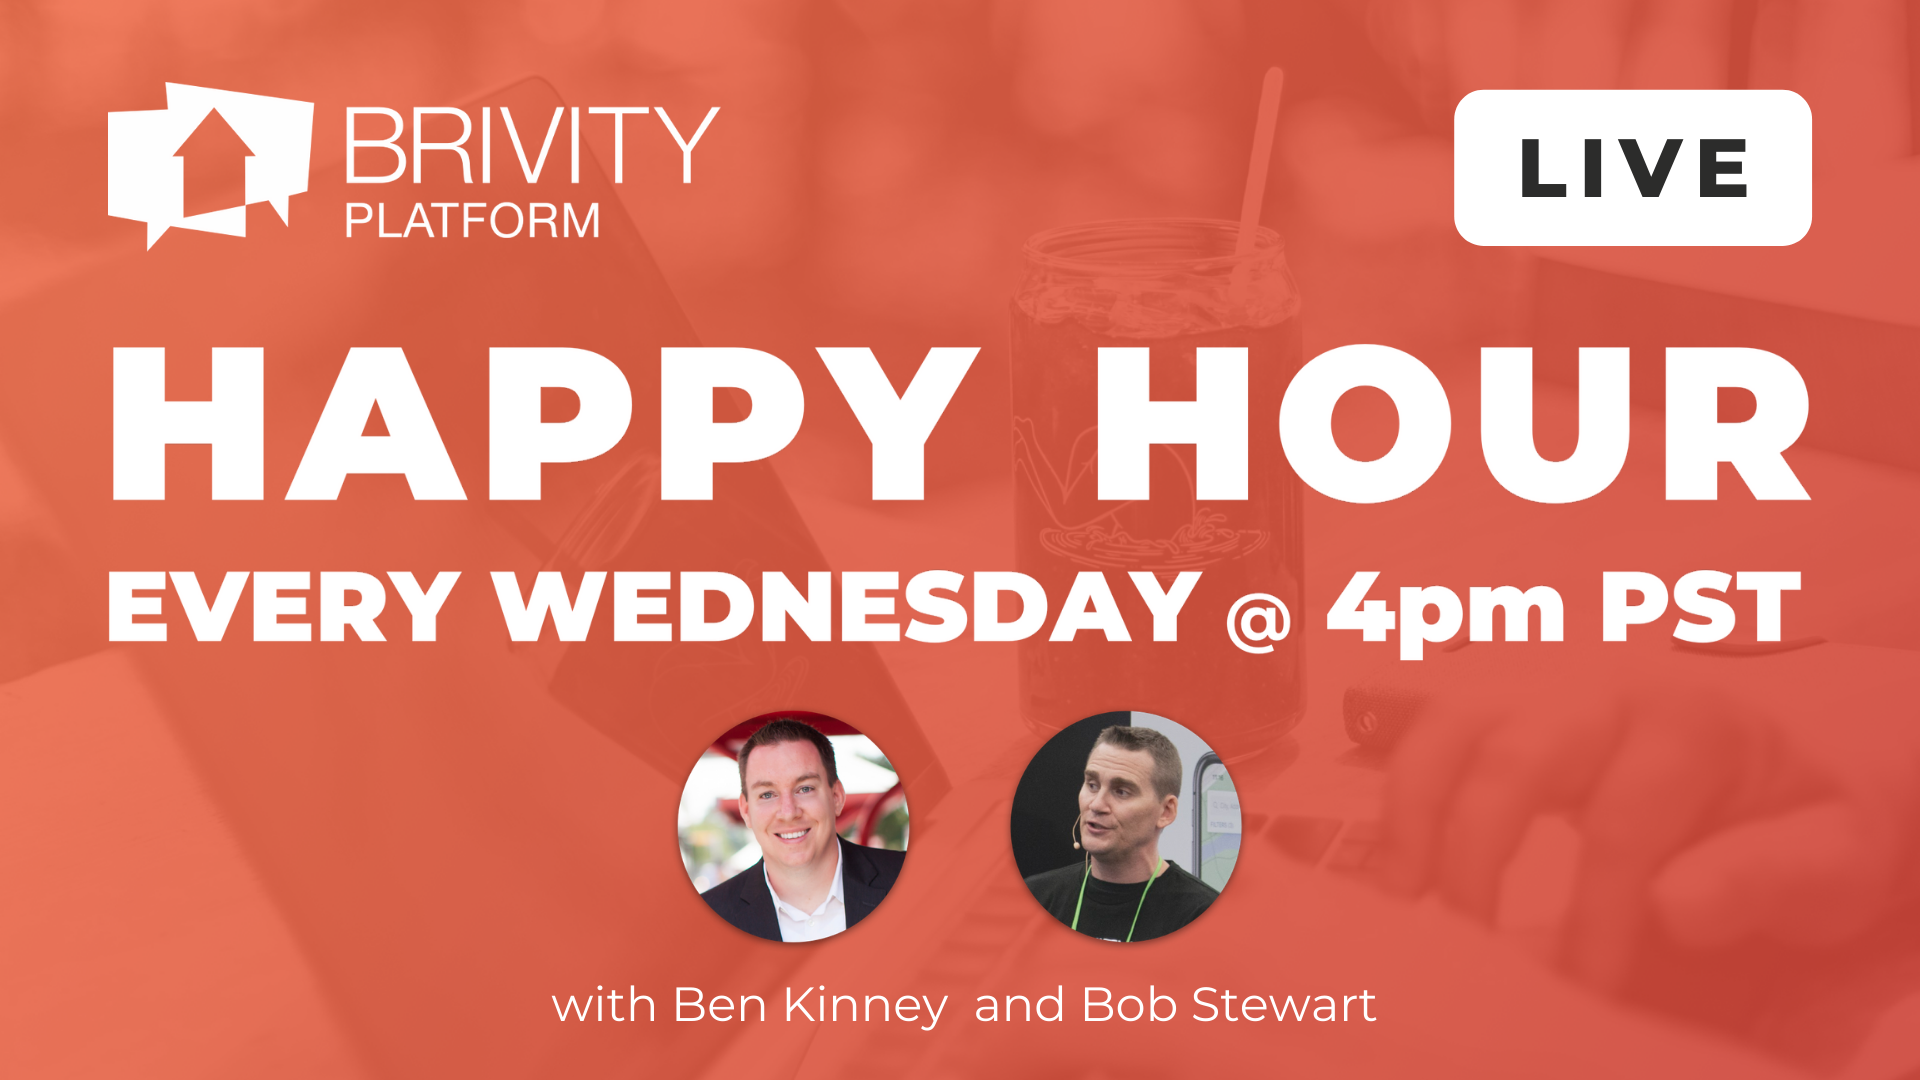 Copy of Brivity - Happy Hour every Wednesday